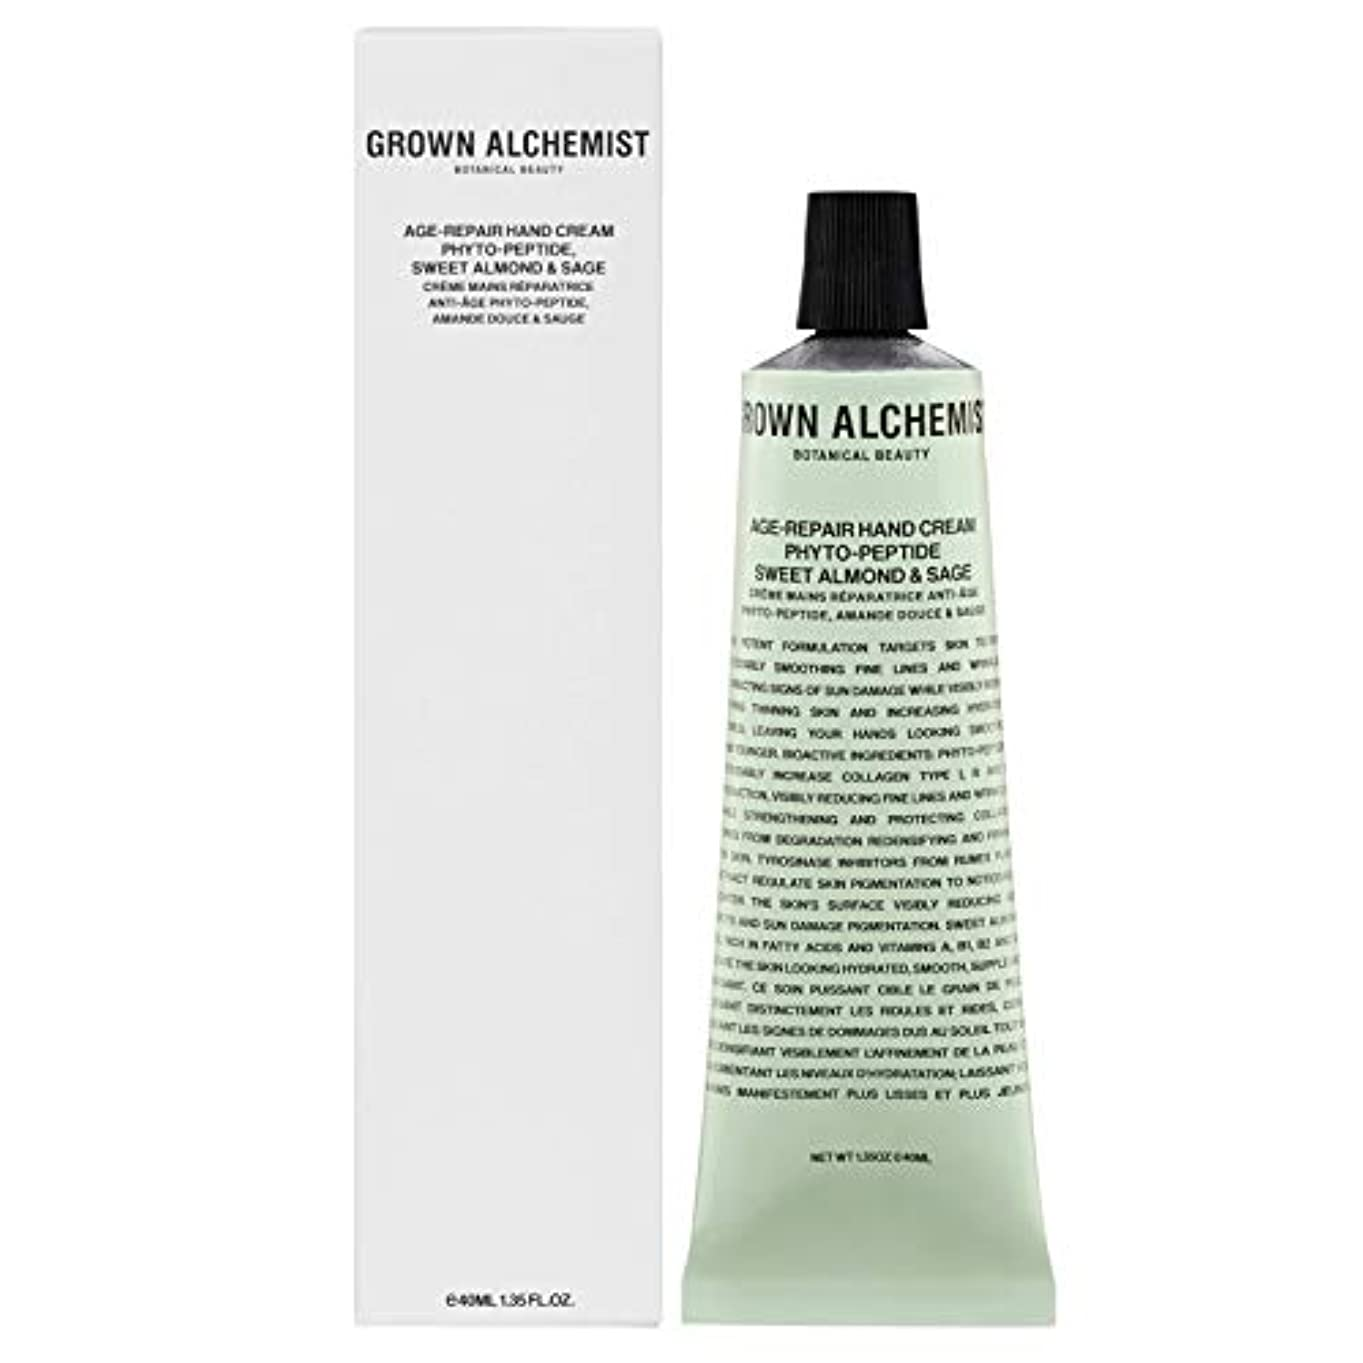 驚かす国際工夫するGrown Alchemist Age-Repair Hand Cream - Phyto-Peptide, Sweet Almond & Sage 40ml/1.35oz並行輸入品